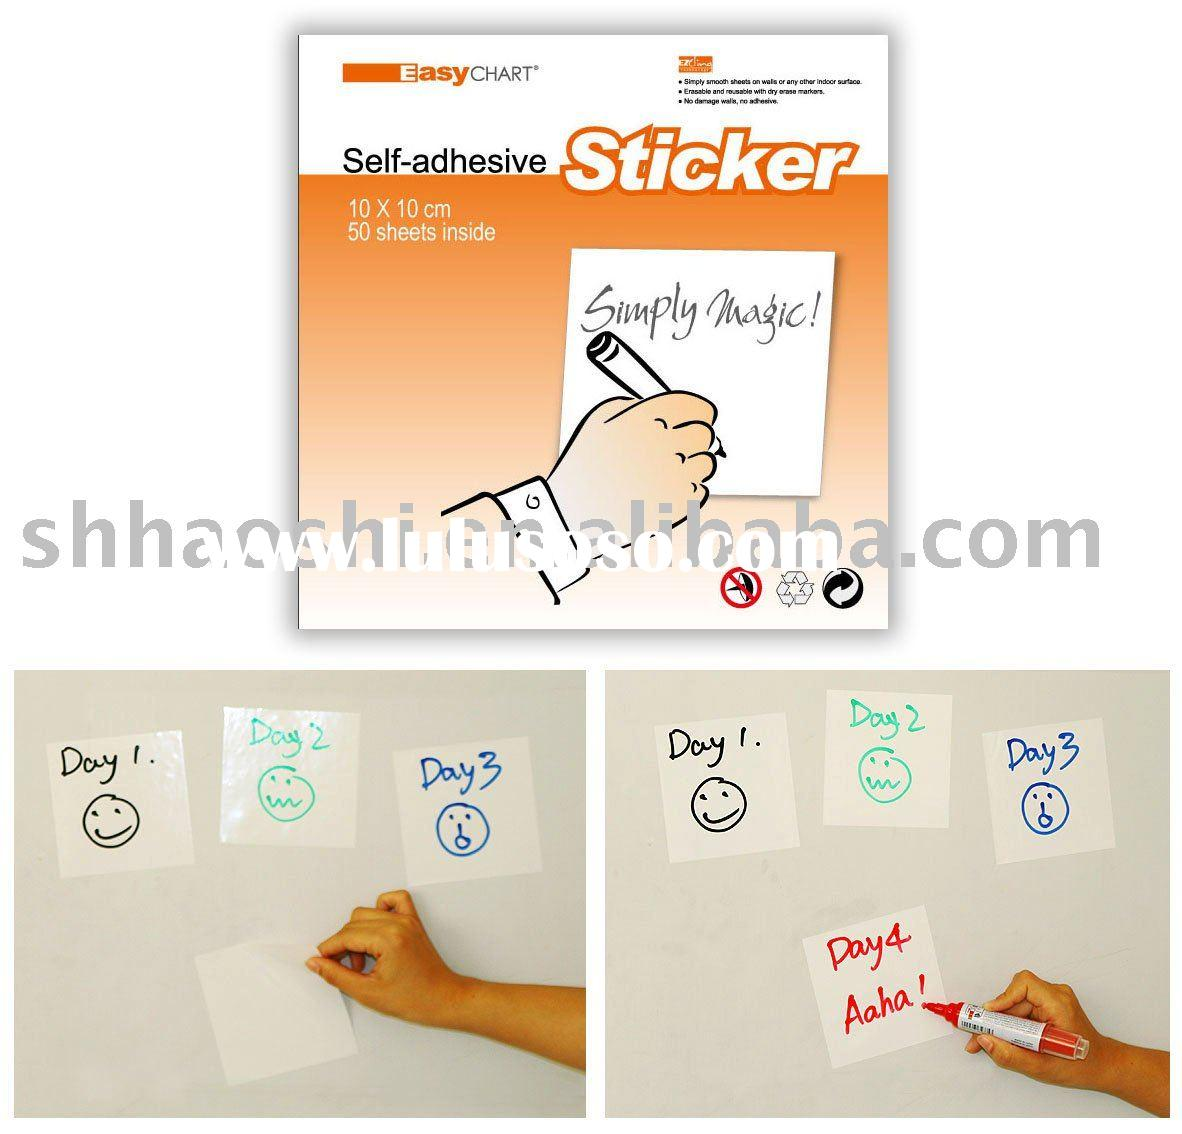 EasyCHART Self-Adhesive Sticker,whiteboard in sheets, OEM Product